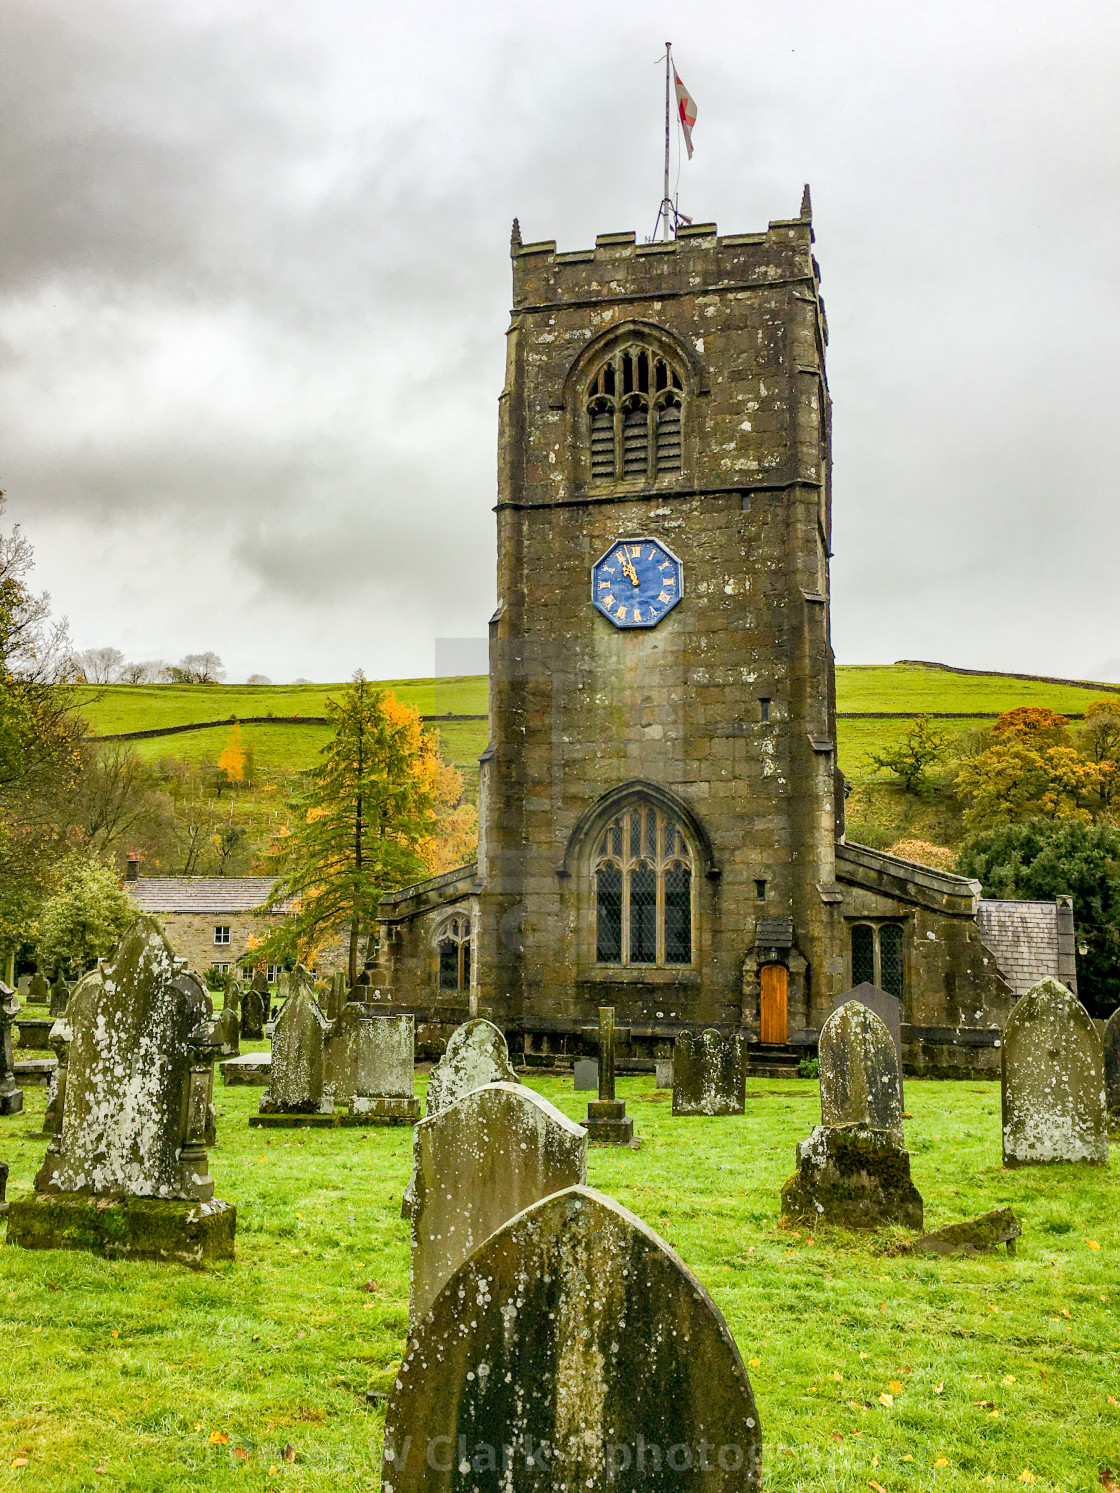 """Burnsall, Yorkshire Dales Village, England, St Wilfrids Parish Church , Clocktower and Graveyard."" stock image"